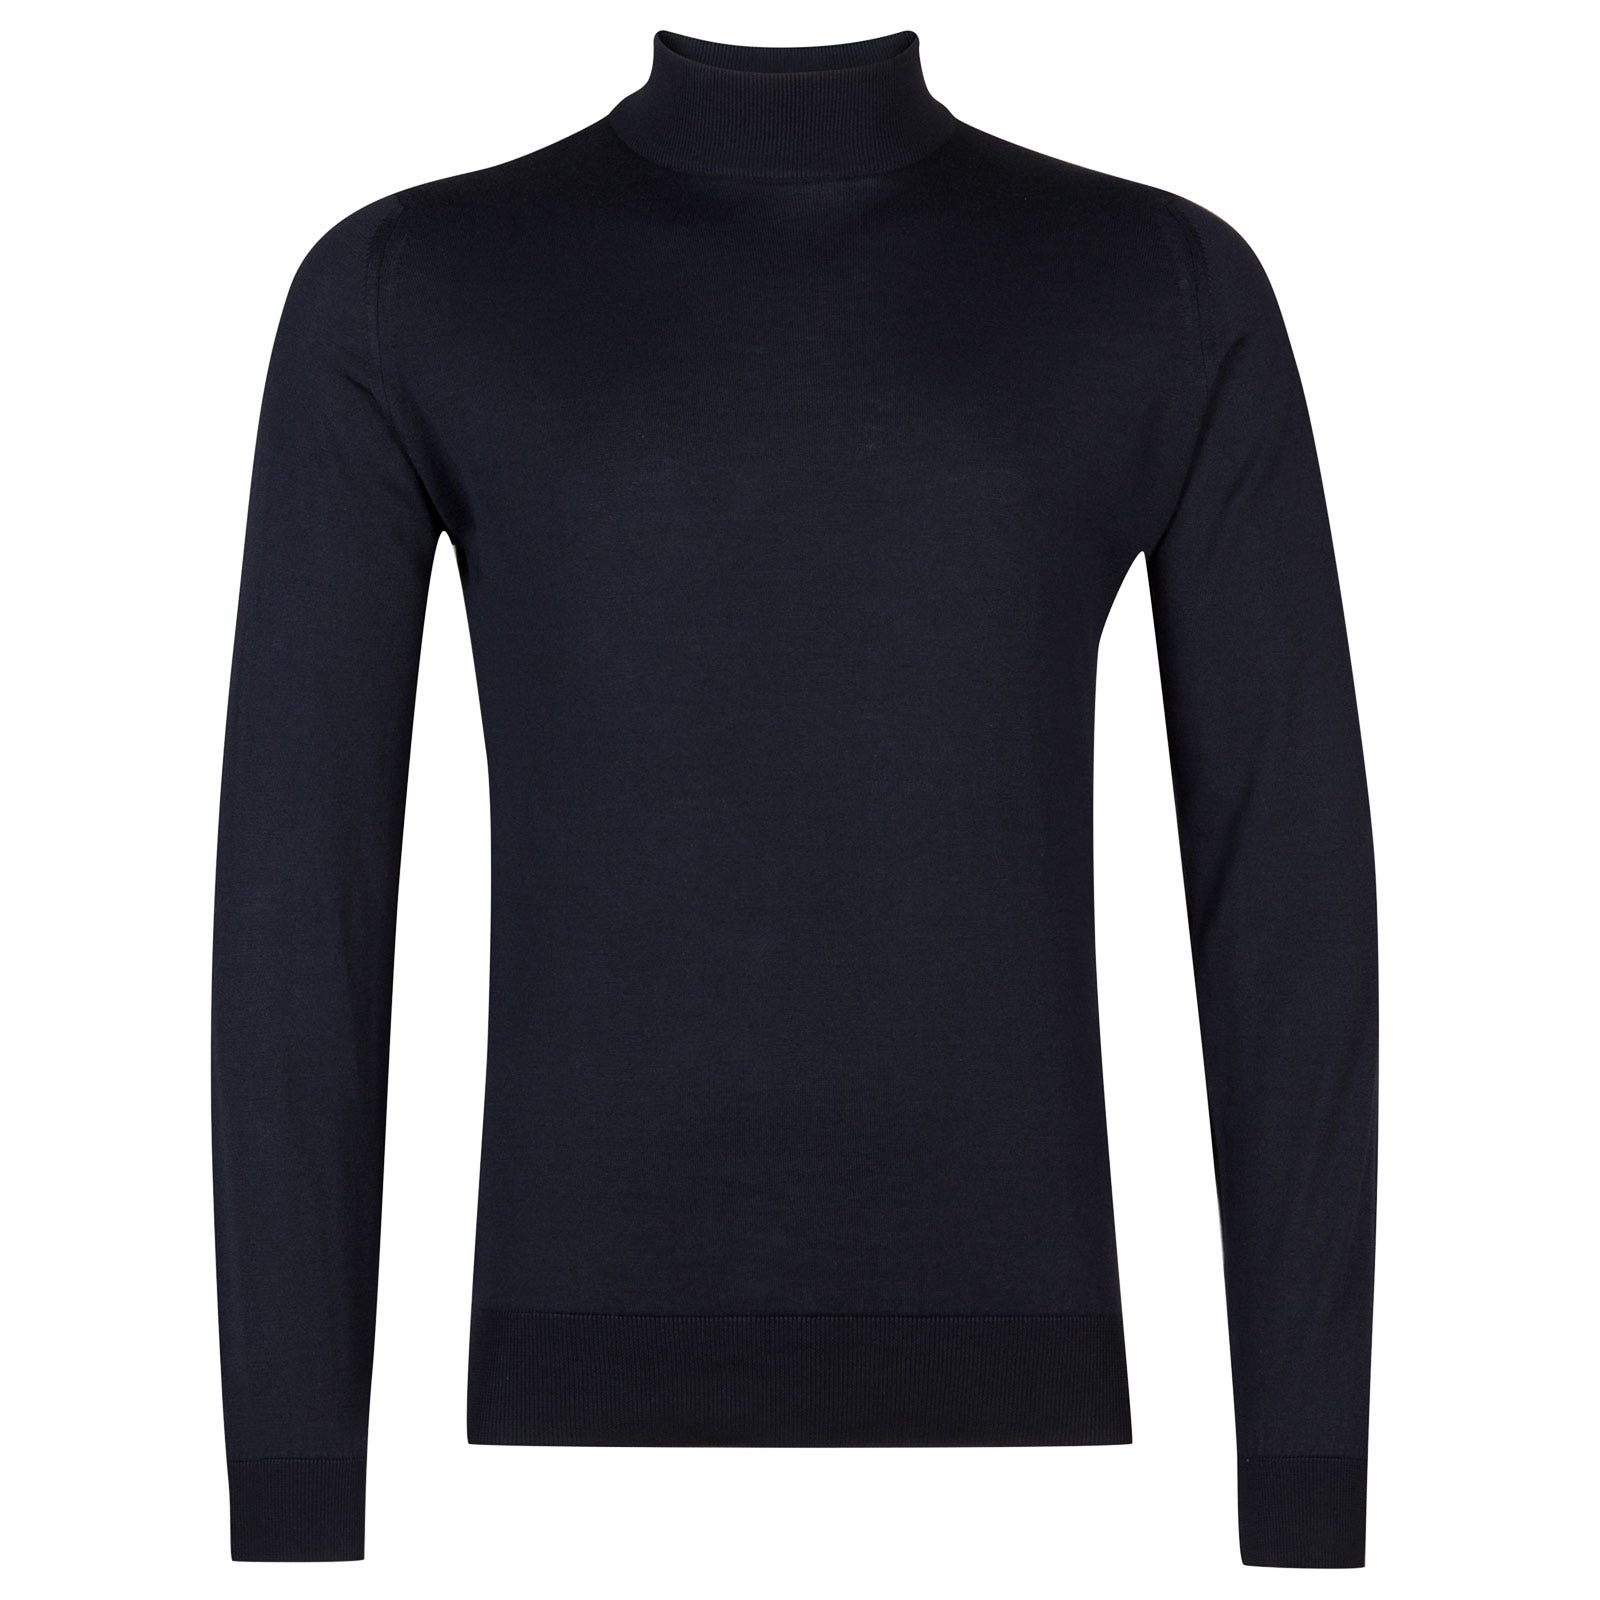 John Smedley Bradgate Sea Island Cotton Pullover in Navy-S